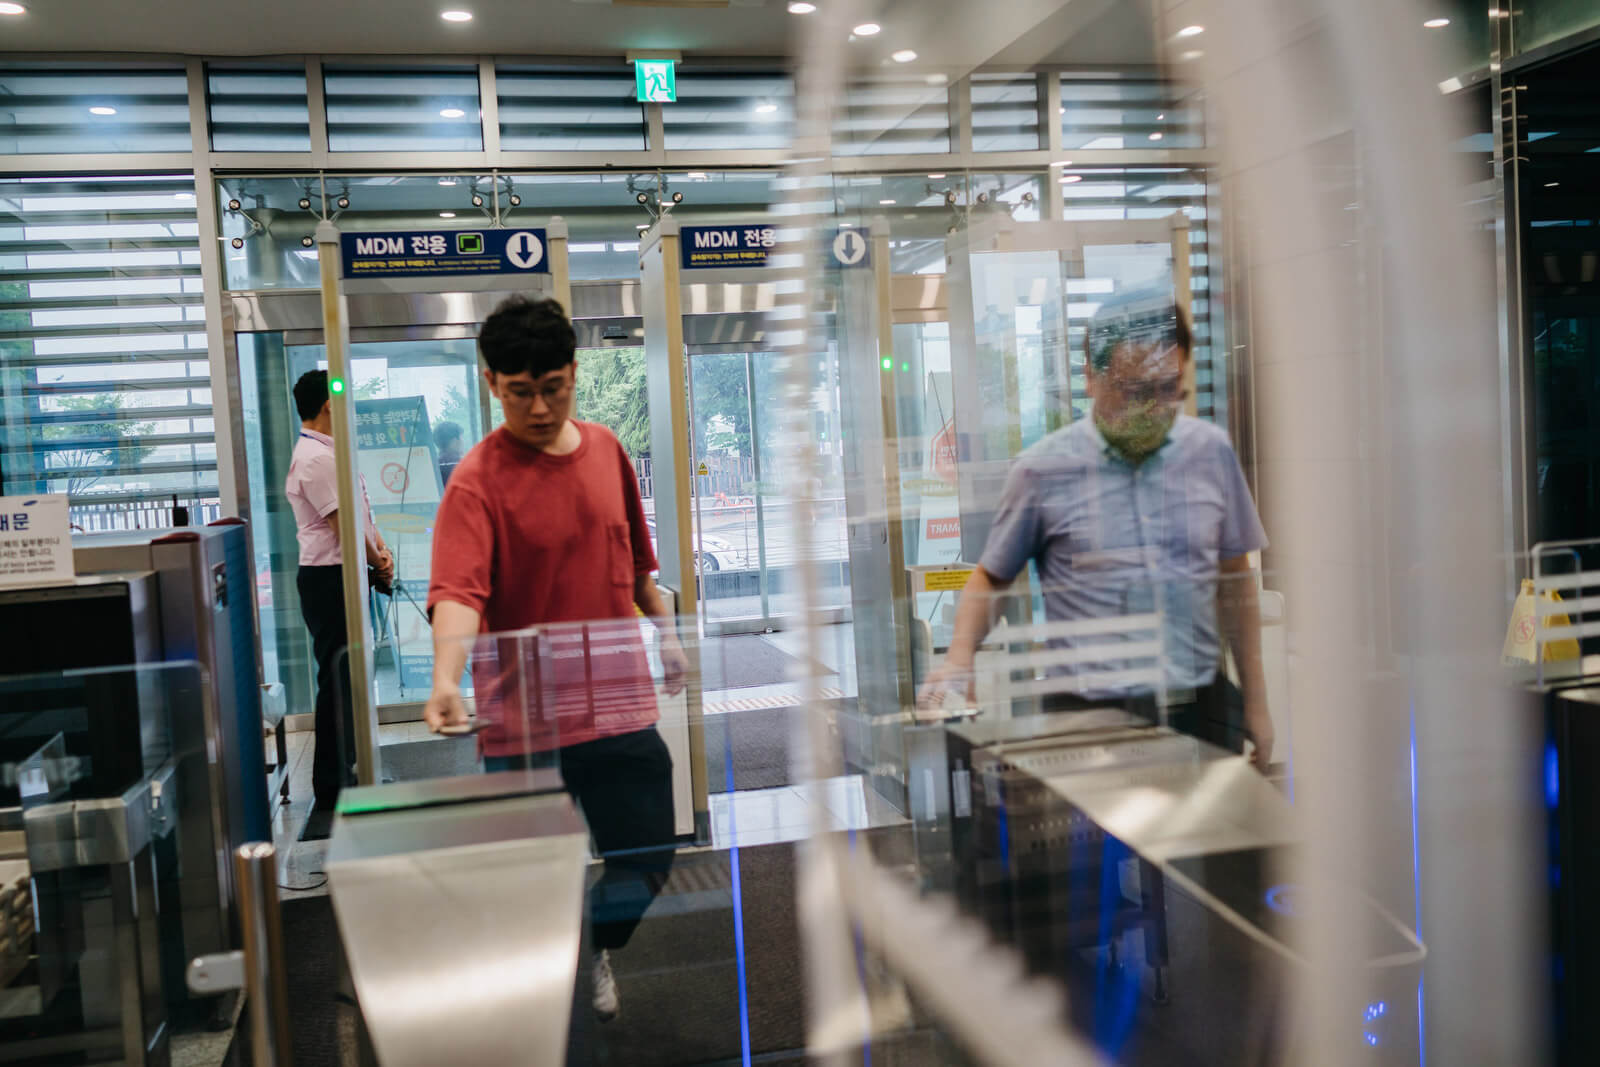 All employees and visitors are required to walk through metal detectors on their way in and out of Samsung's R&D facilities.